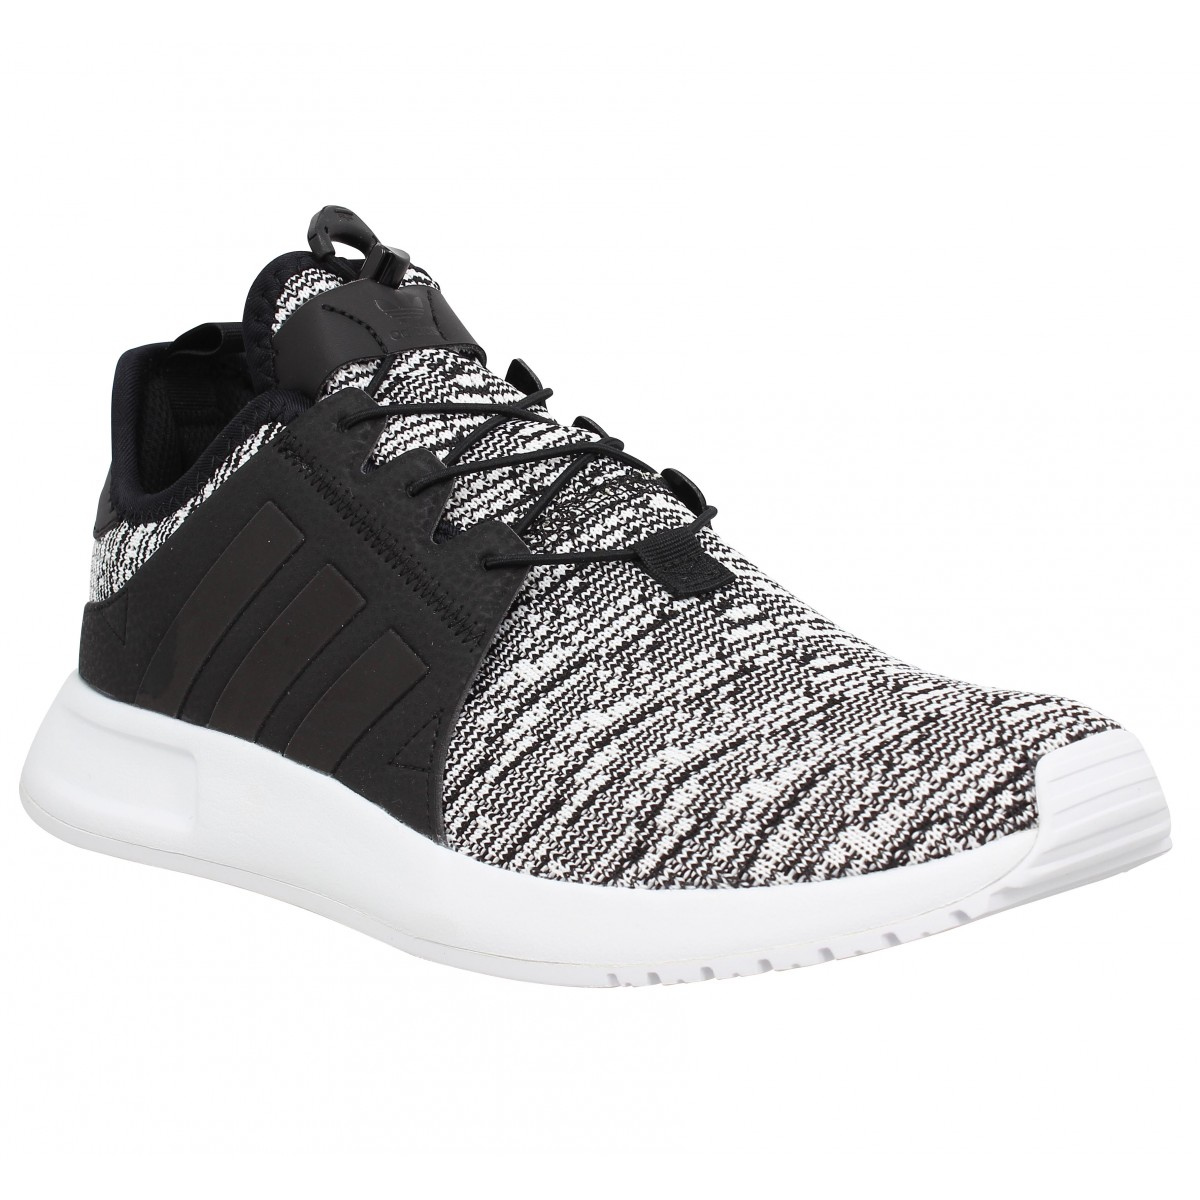 low priced e0ae1 0e2af baskets adidas toile homme